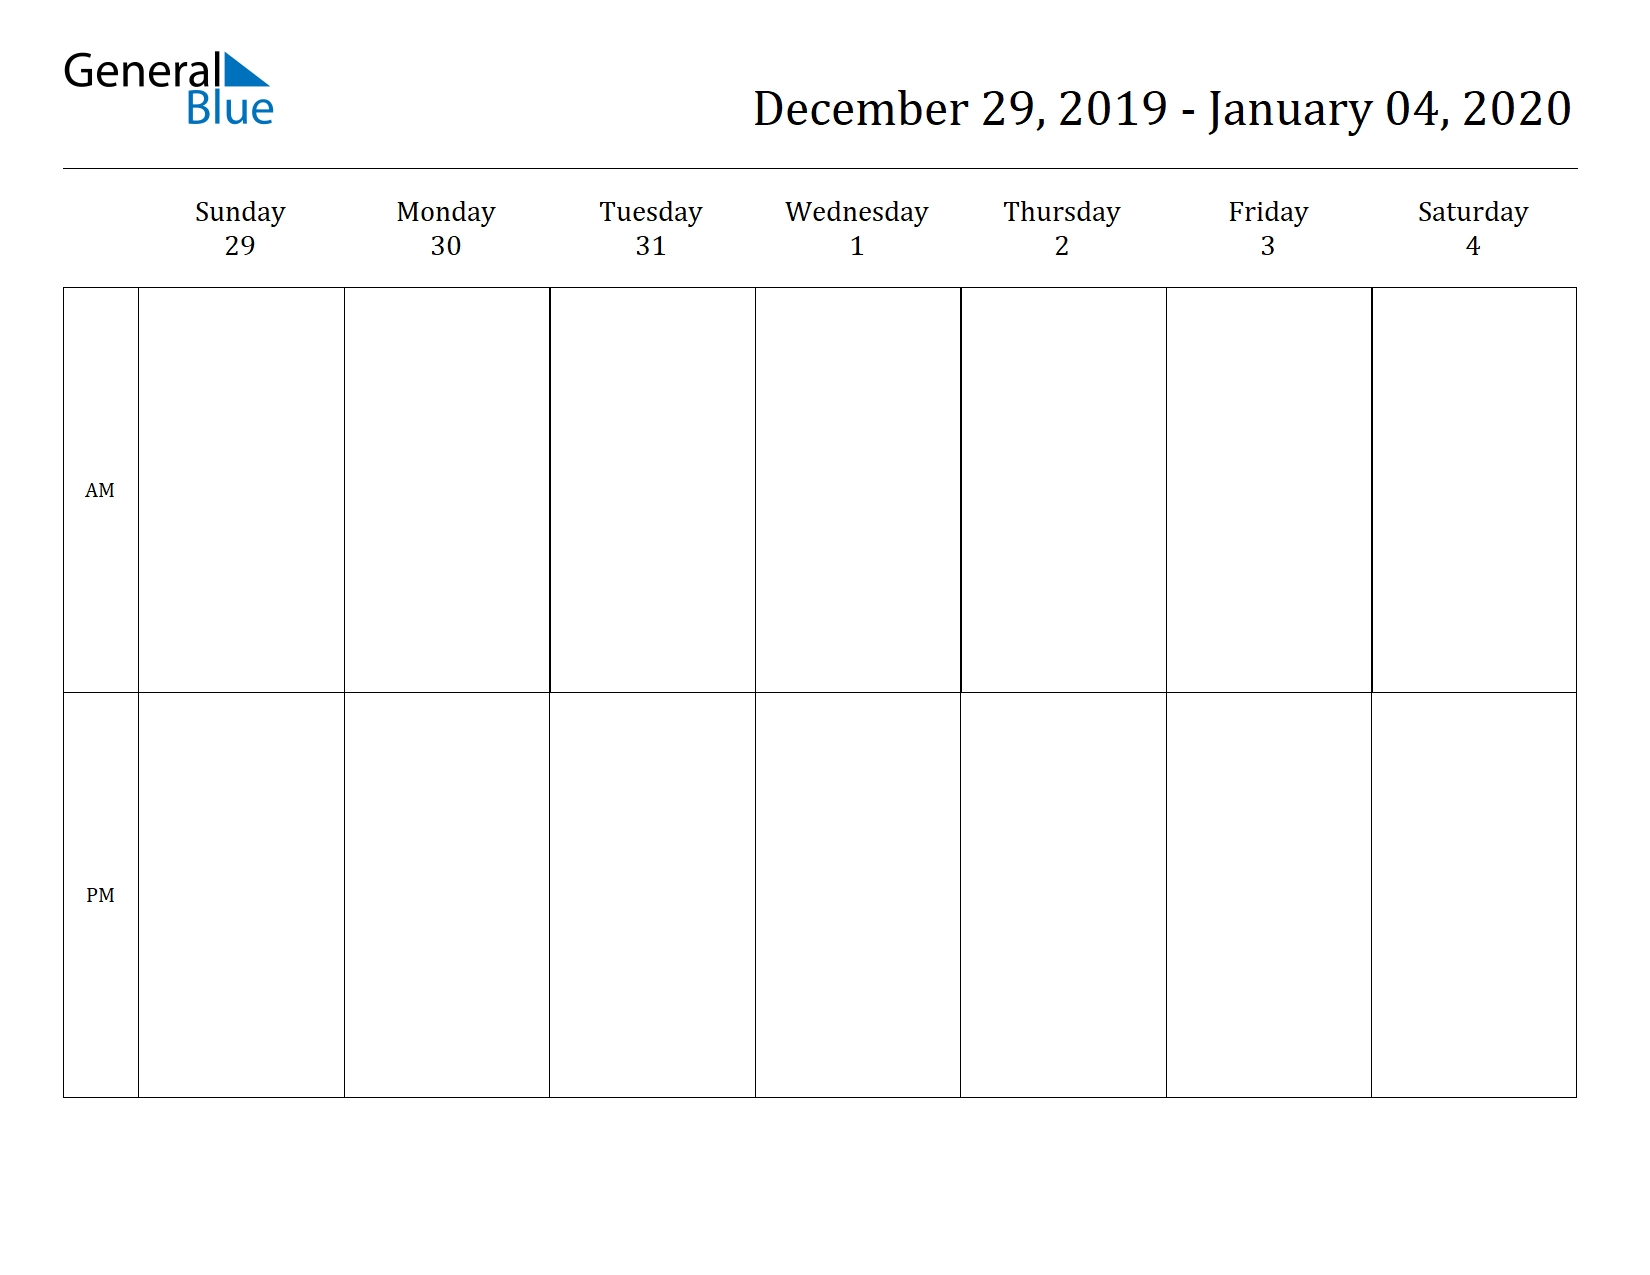 Free Printable Calendar In Pdf, Word And Excel - Poland-2020 Monday To Friday Schedule Template